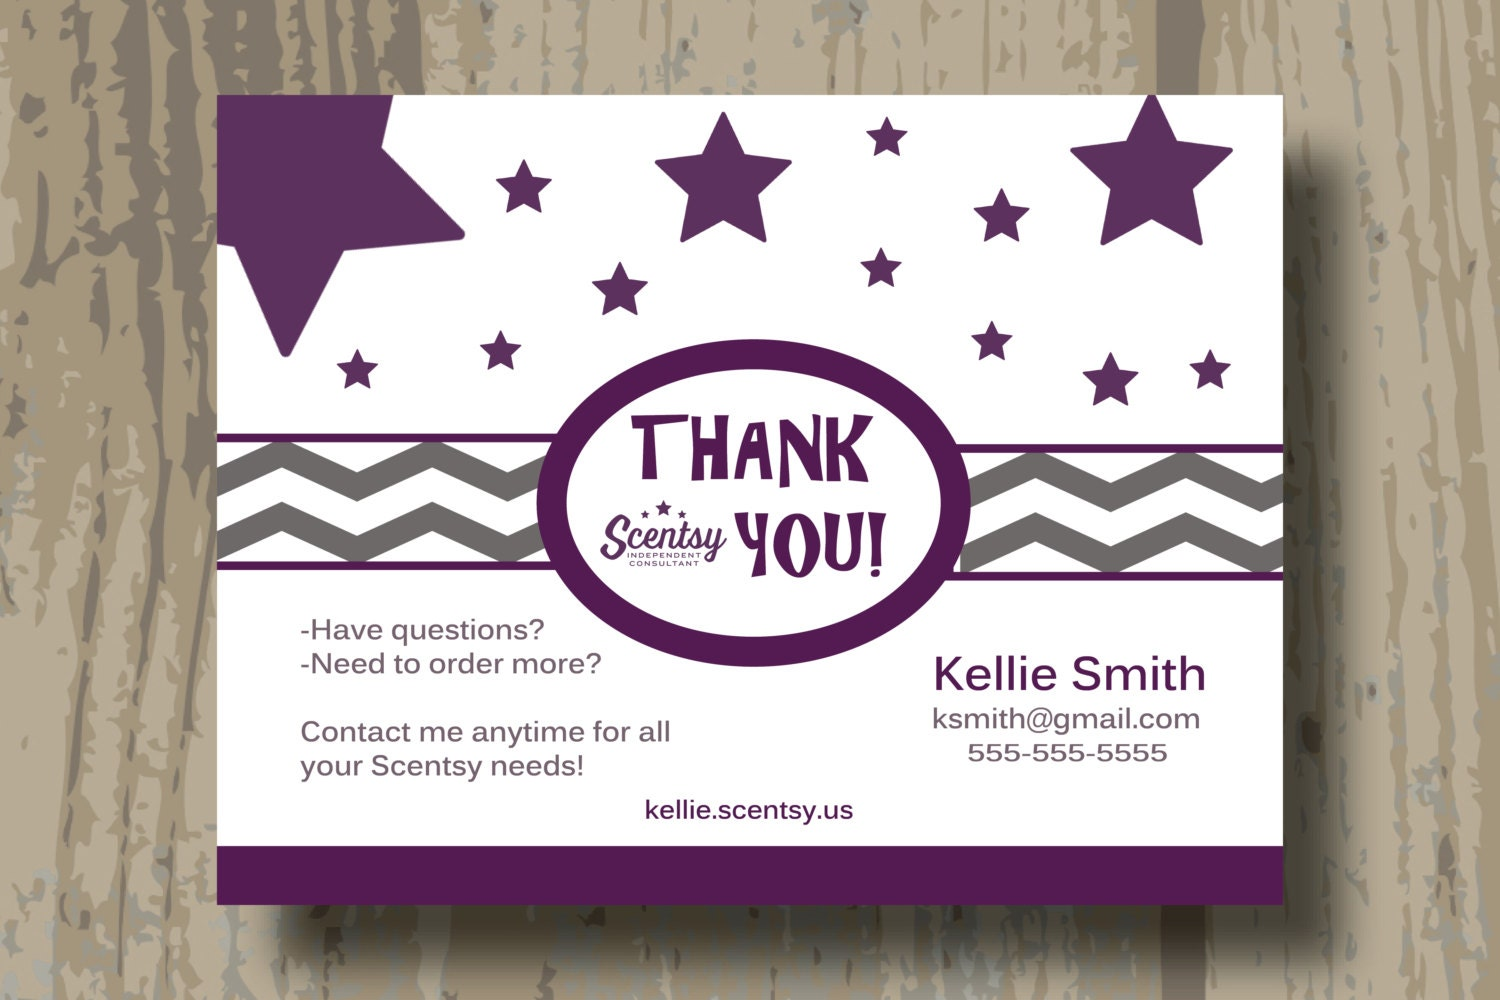 AUTHORIZED SCENTSY VENDOR Custom Scentsy Thank You Cards